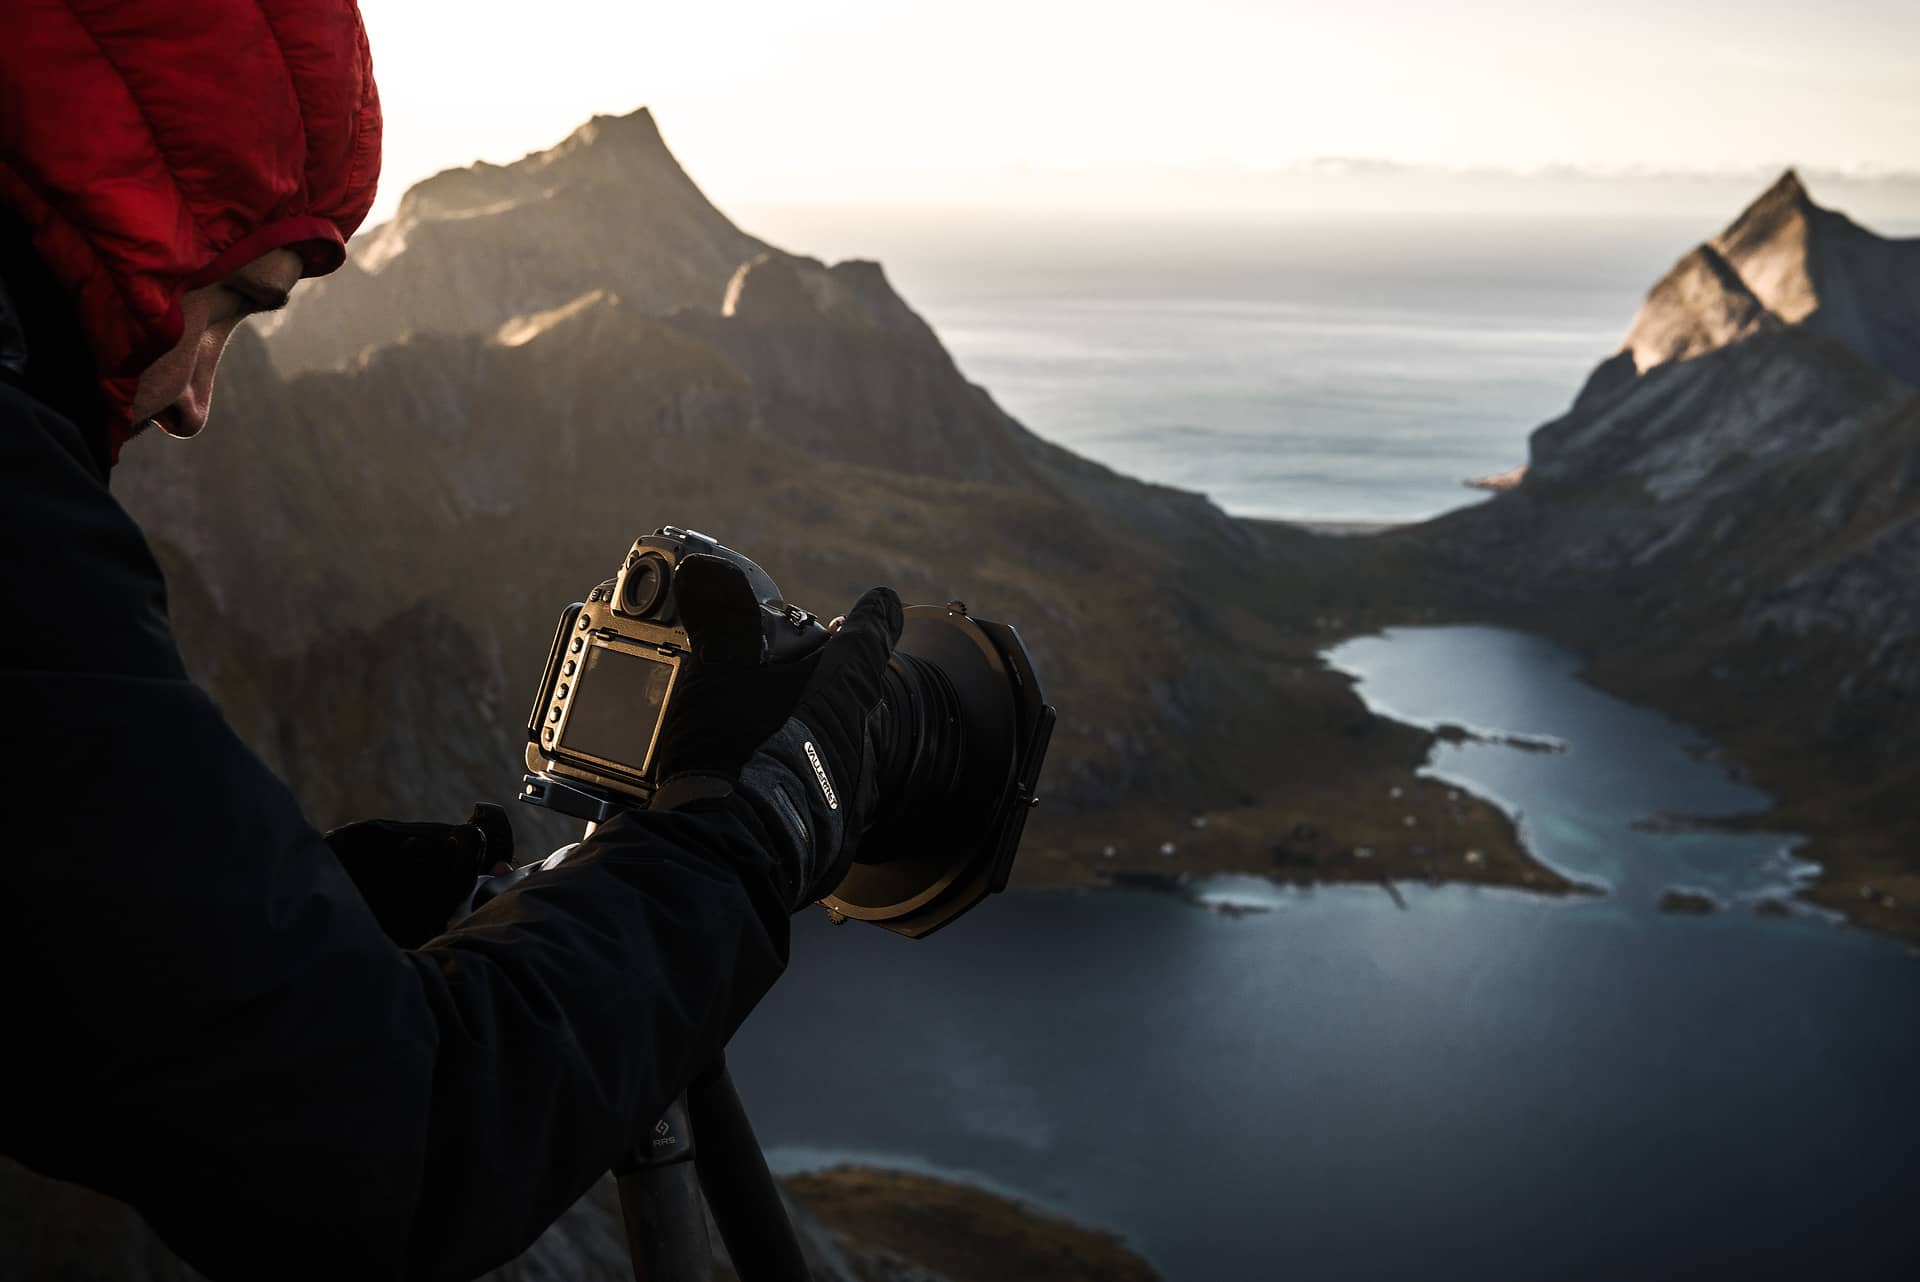 Christian Hoiberg taking a photo in lofoten in the mountains